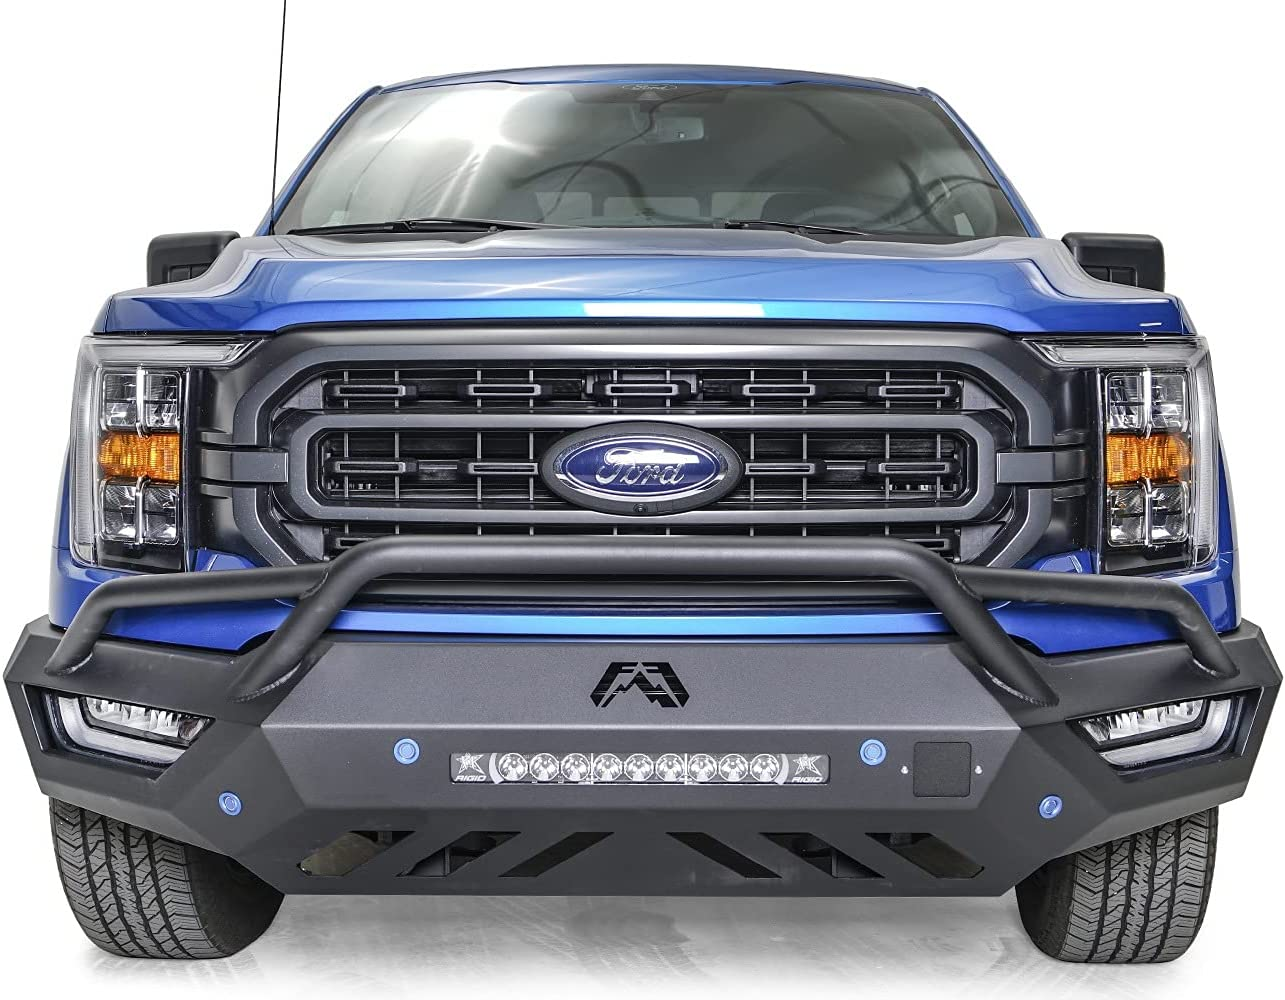 Fab Bombing free shipping Fours 21+ F150 BMPR W Max 81% OFF PRRNR Veng